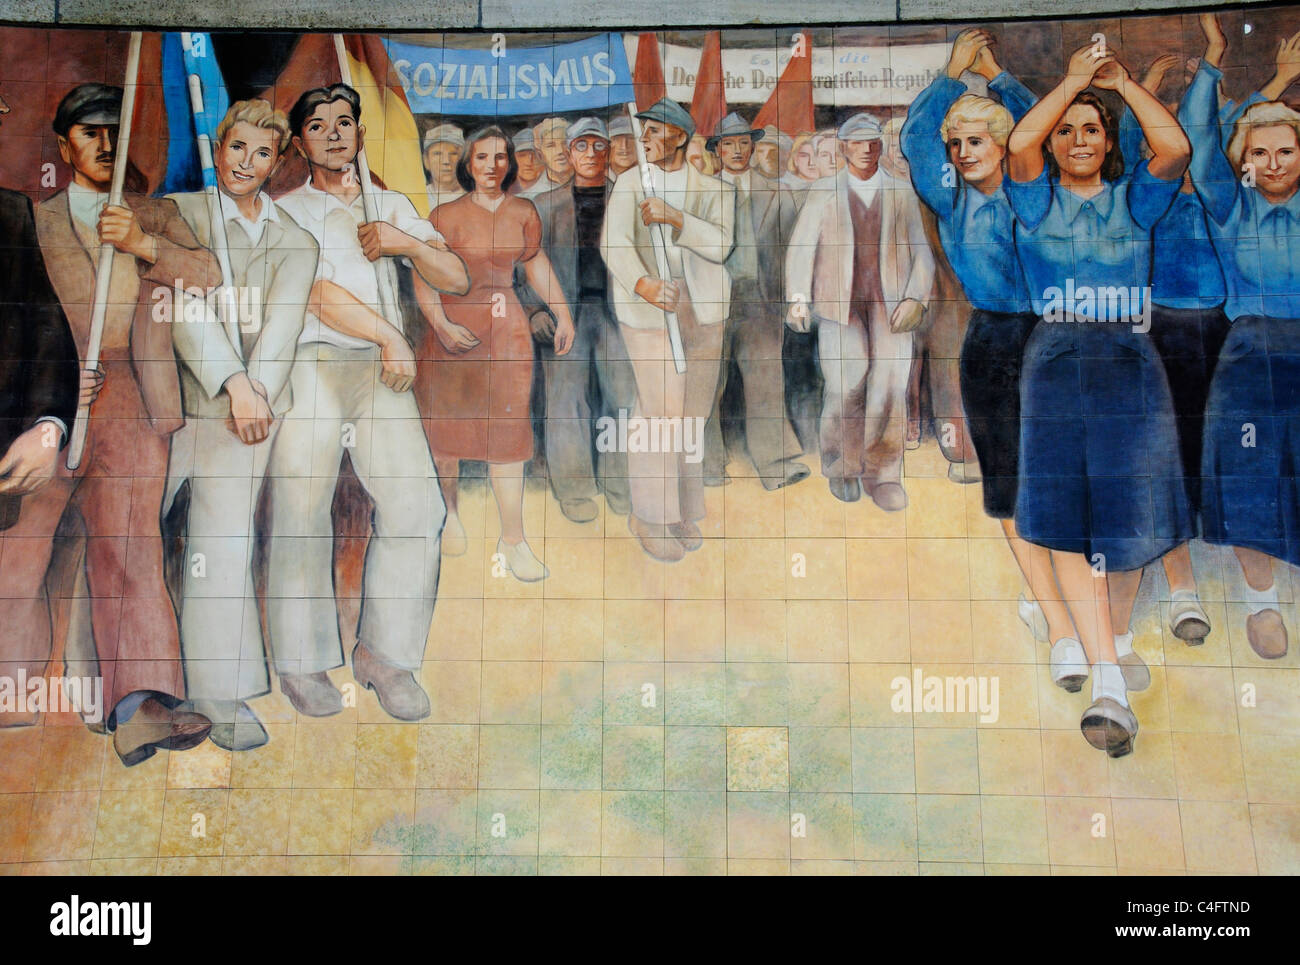 Socialist wall mural of happy workers on the wall of the Ministry of Finance building in ex East Berlin - Stock Image